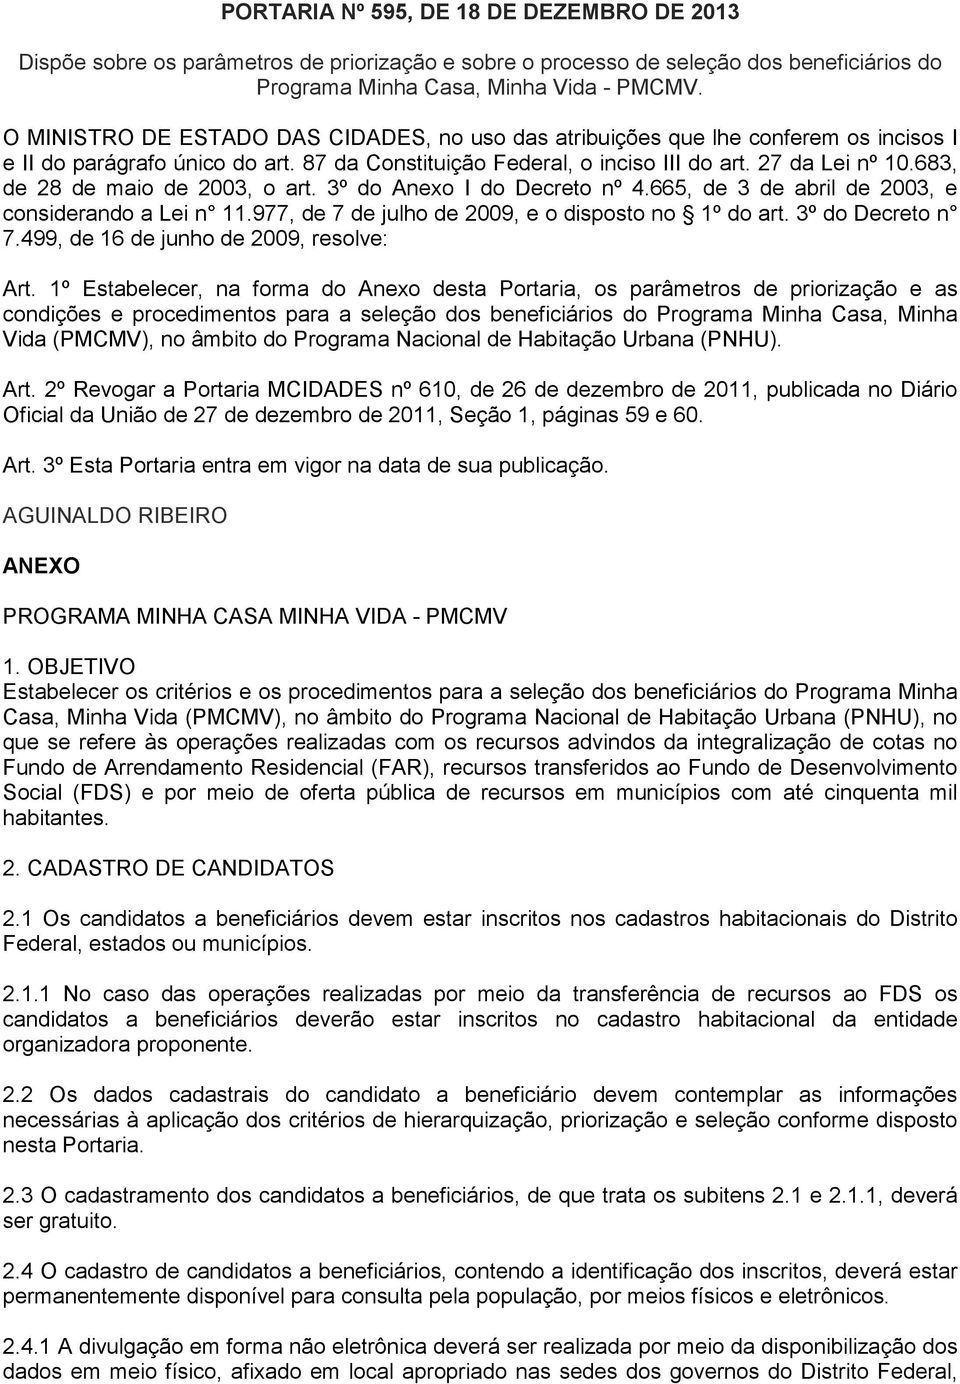 683, de 28 de maio de 2003, o art. 3º do Anexo I do Decreto nº 4.665, de 3 de abril de 2003, e considerando a Lei n 11.977, de 7 de julho de 2009, e o disposto no 1º do art. 3º do Decreto n 7.